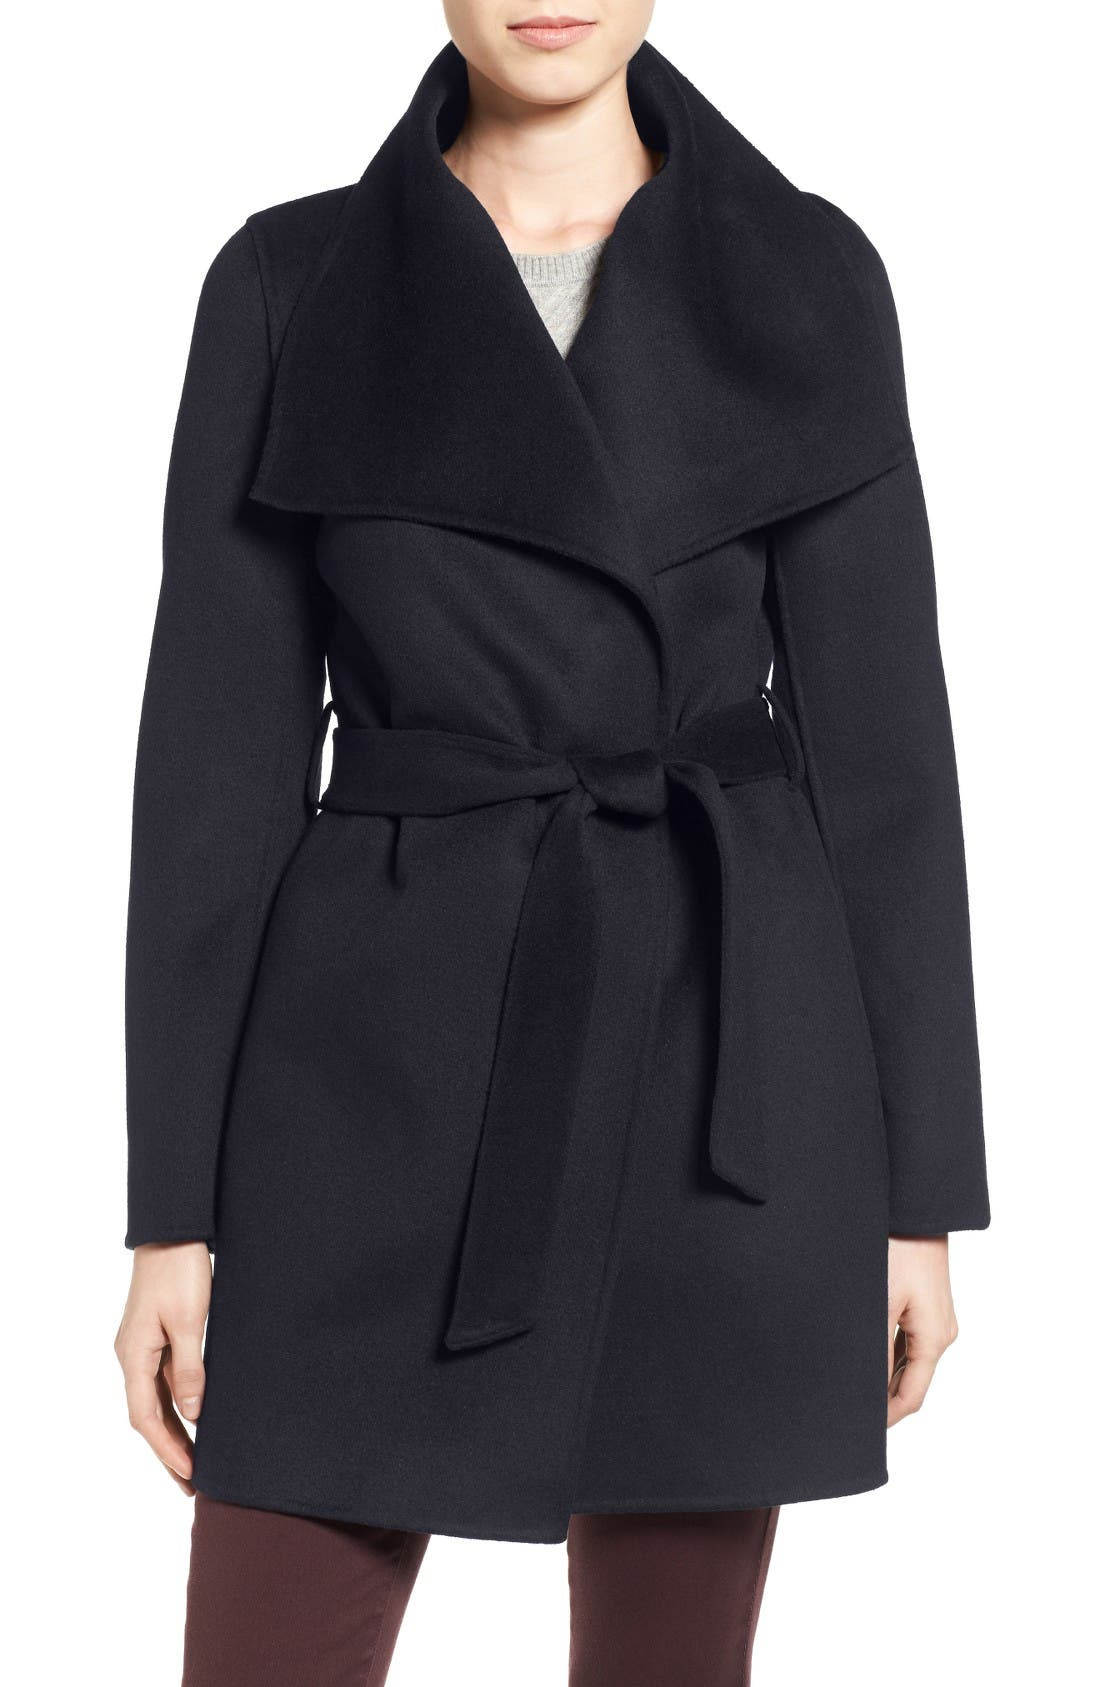 Main Image - Tahari 'Ella' Belted Double Face Wool Blend Wrap Coat (Regular & Petite)